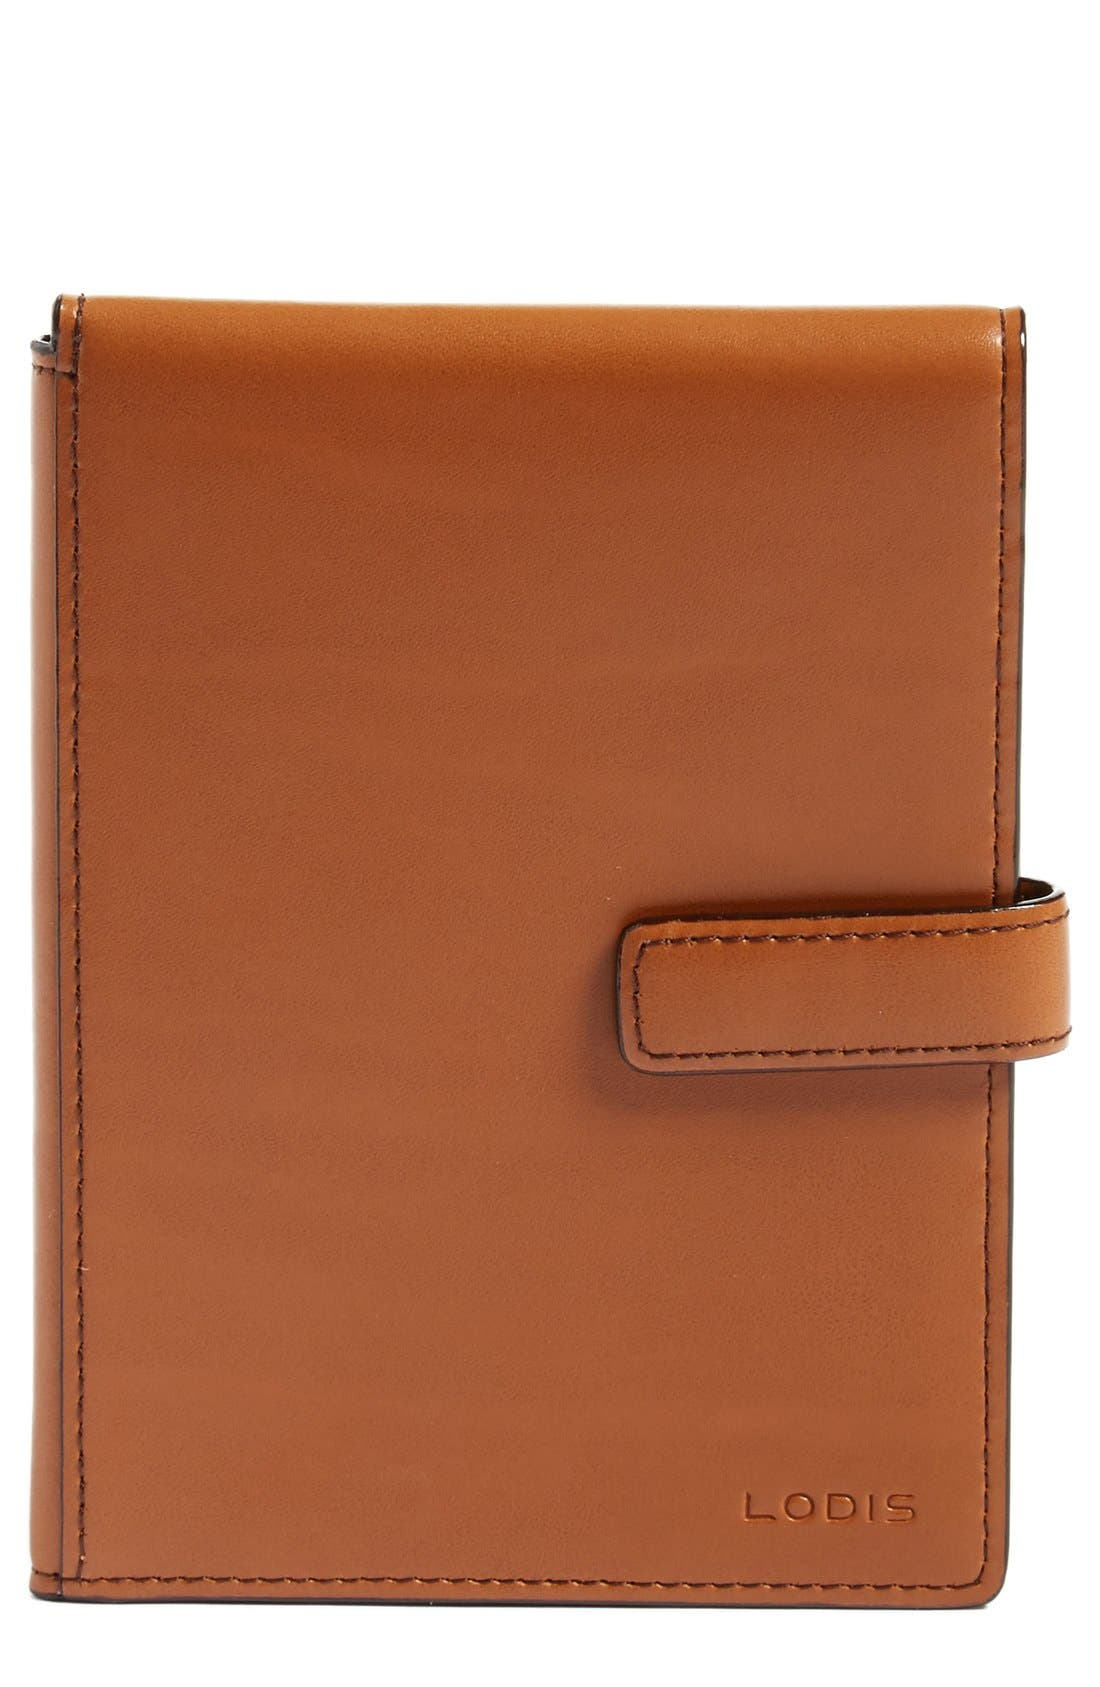 Main Image - LODIS Los Angeles Audrey RFID Leather Passport Wallet (Nordstrom Exclusive)